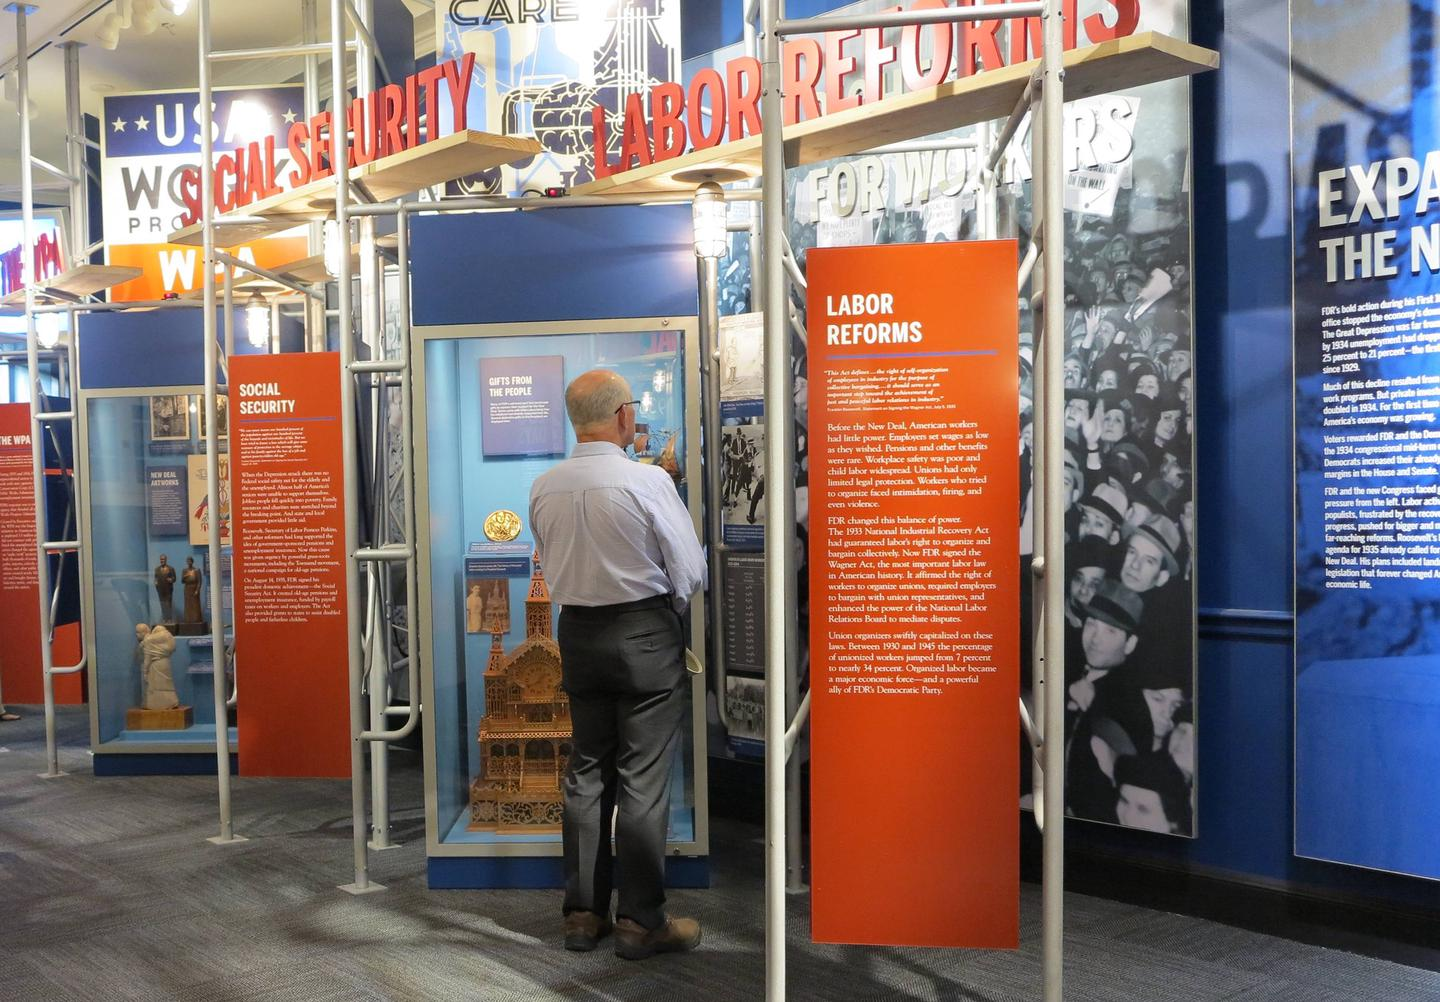 A New DealThe American economy was reeling in 1932 as unemployment sat at 25%. Enter Franklin Roosevelt. The exhibit begins with FDR's promise for a New Deal, improved government agencies, Social Security, and a renewed U.S. economy.